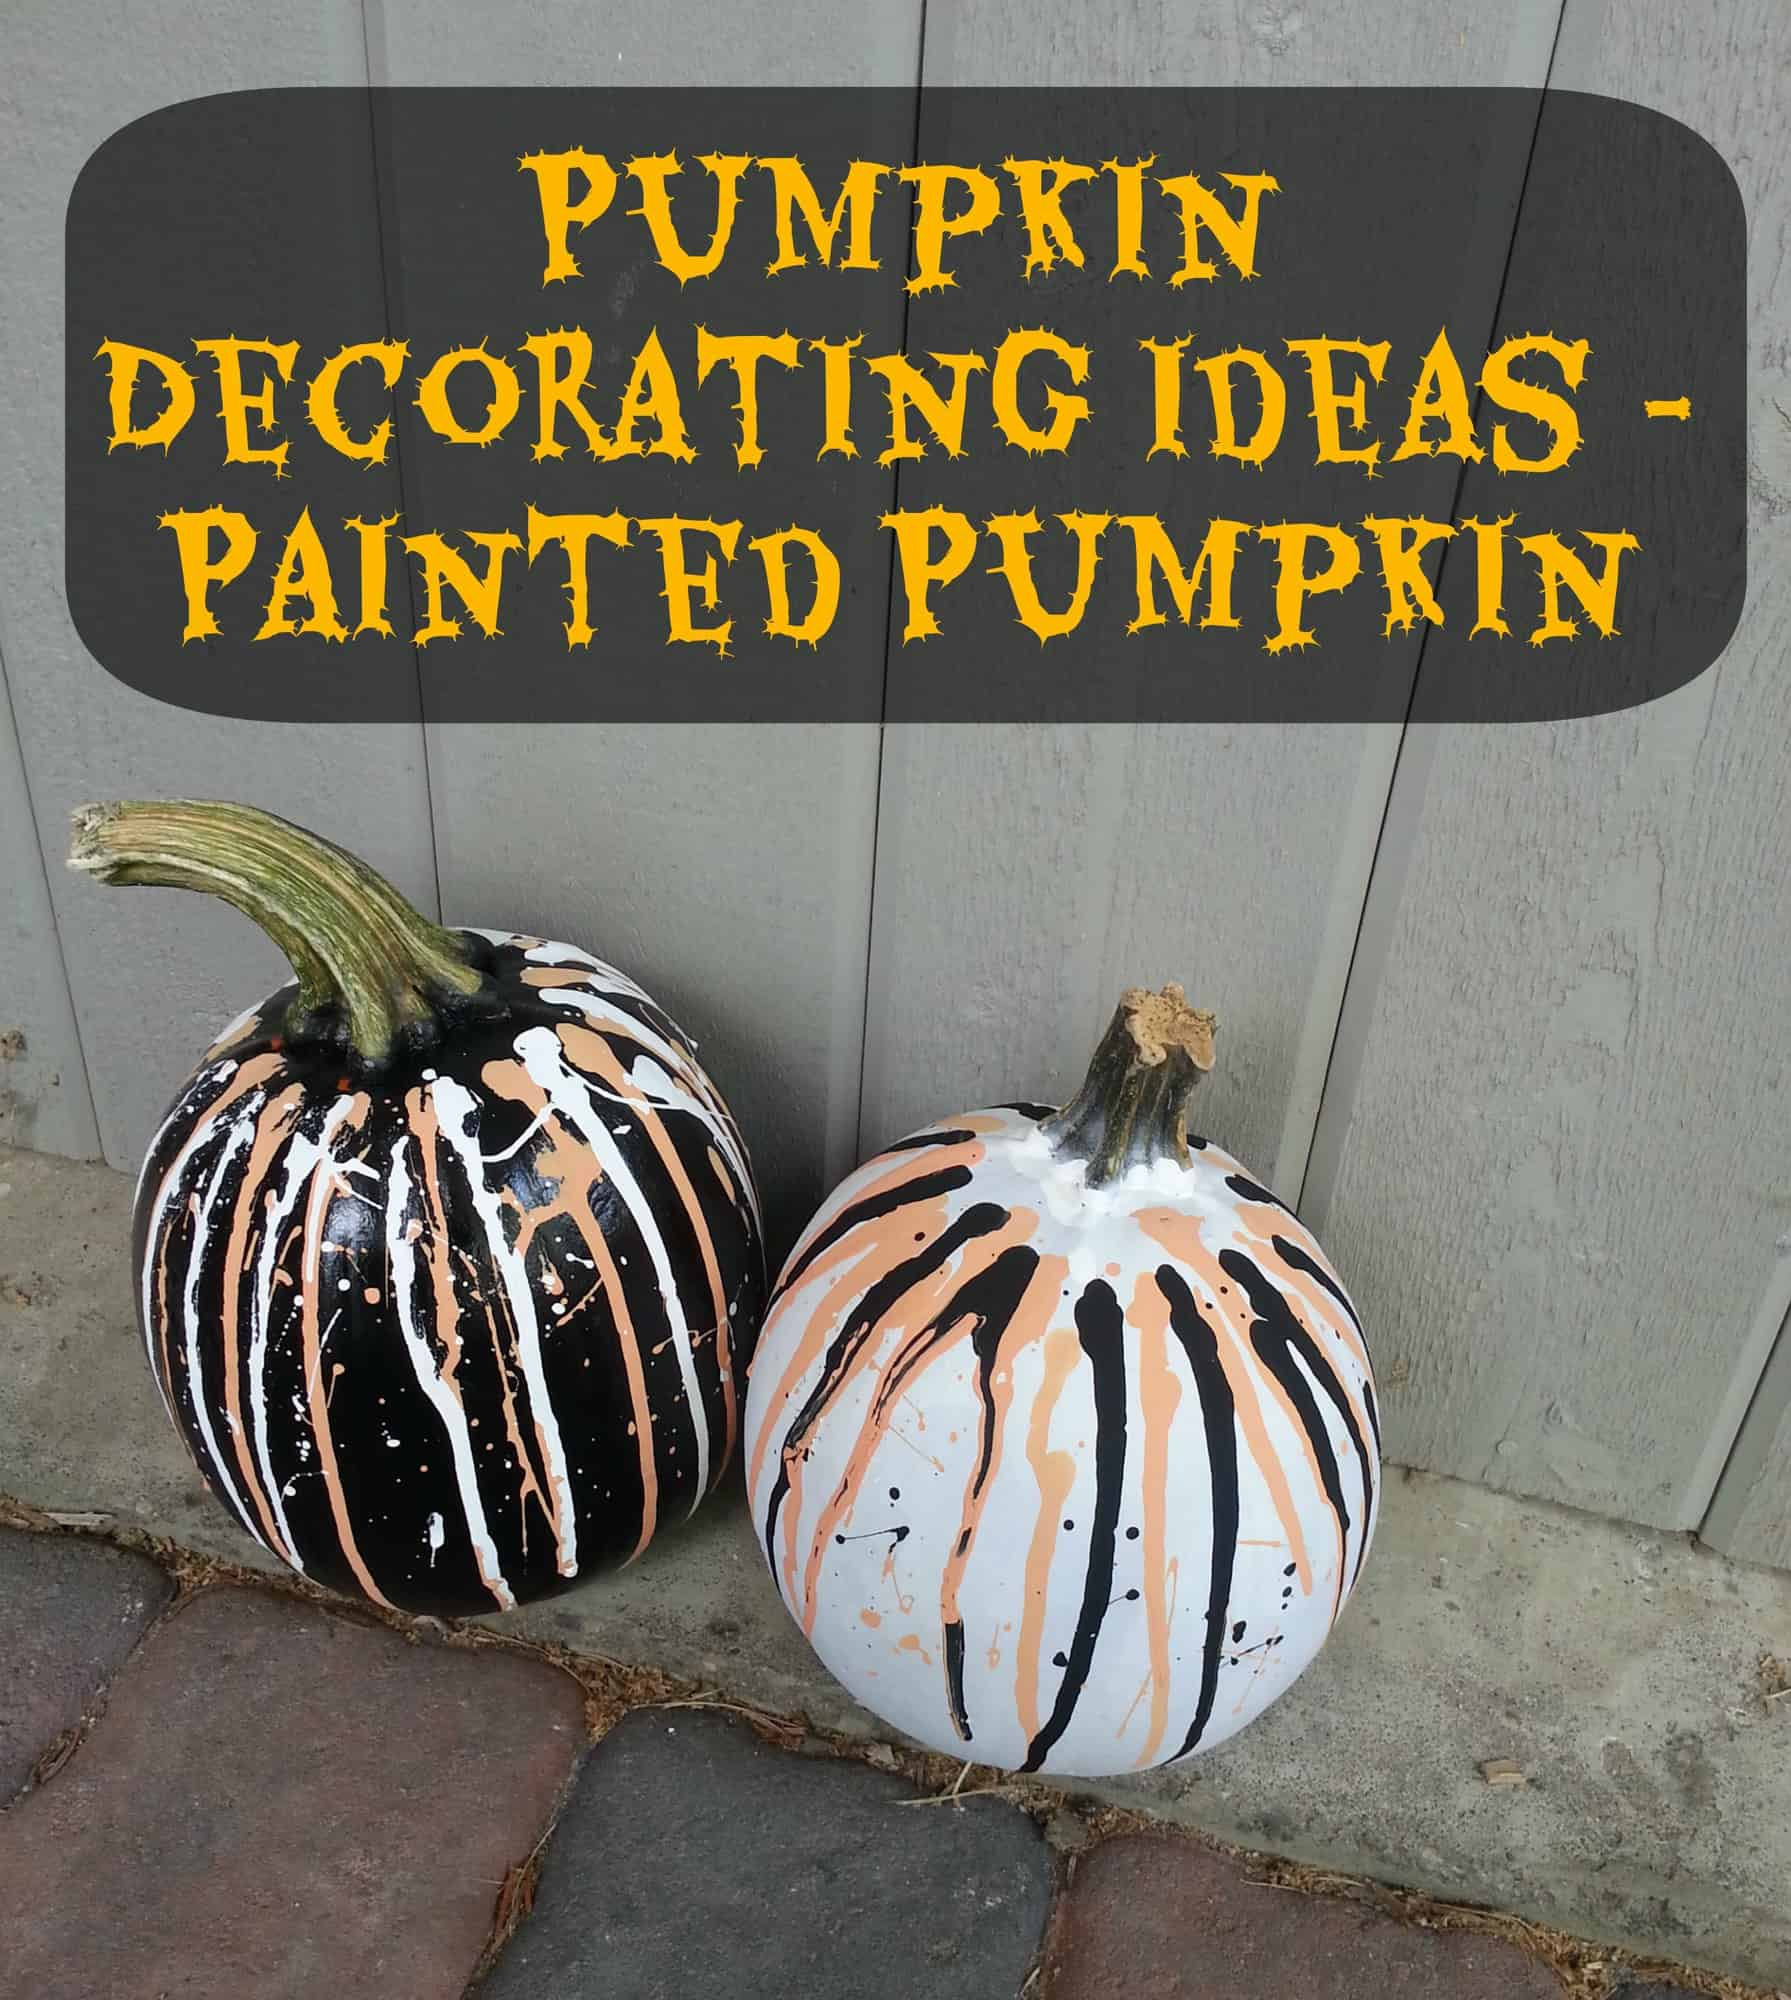 Pumpkin Decorating Ideas - Painted Pumpkins 4